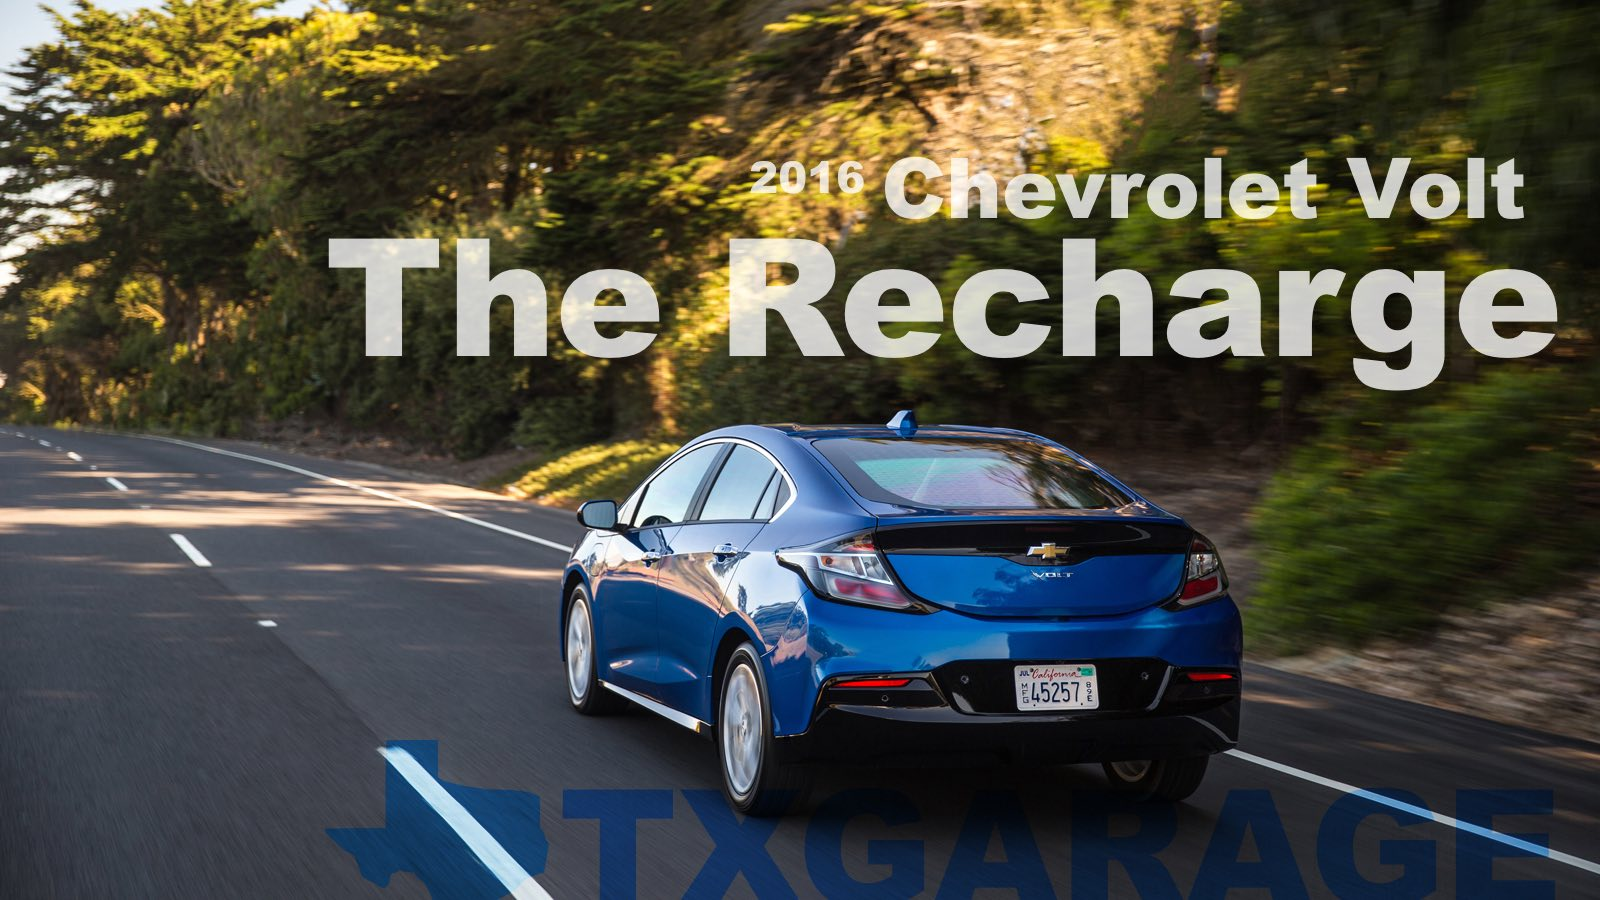 The 2016 Chevrolet Volt - The Recharge